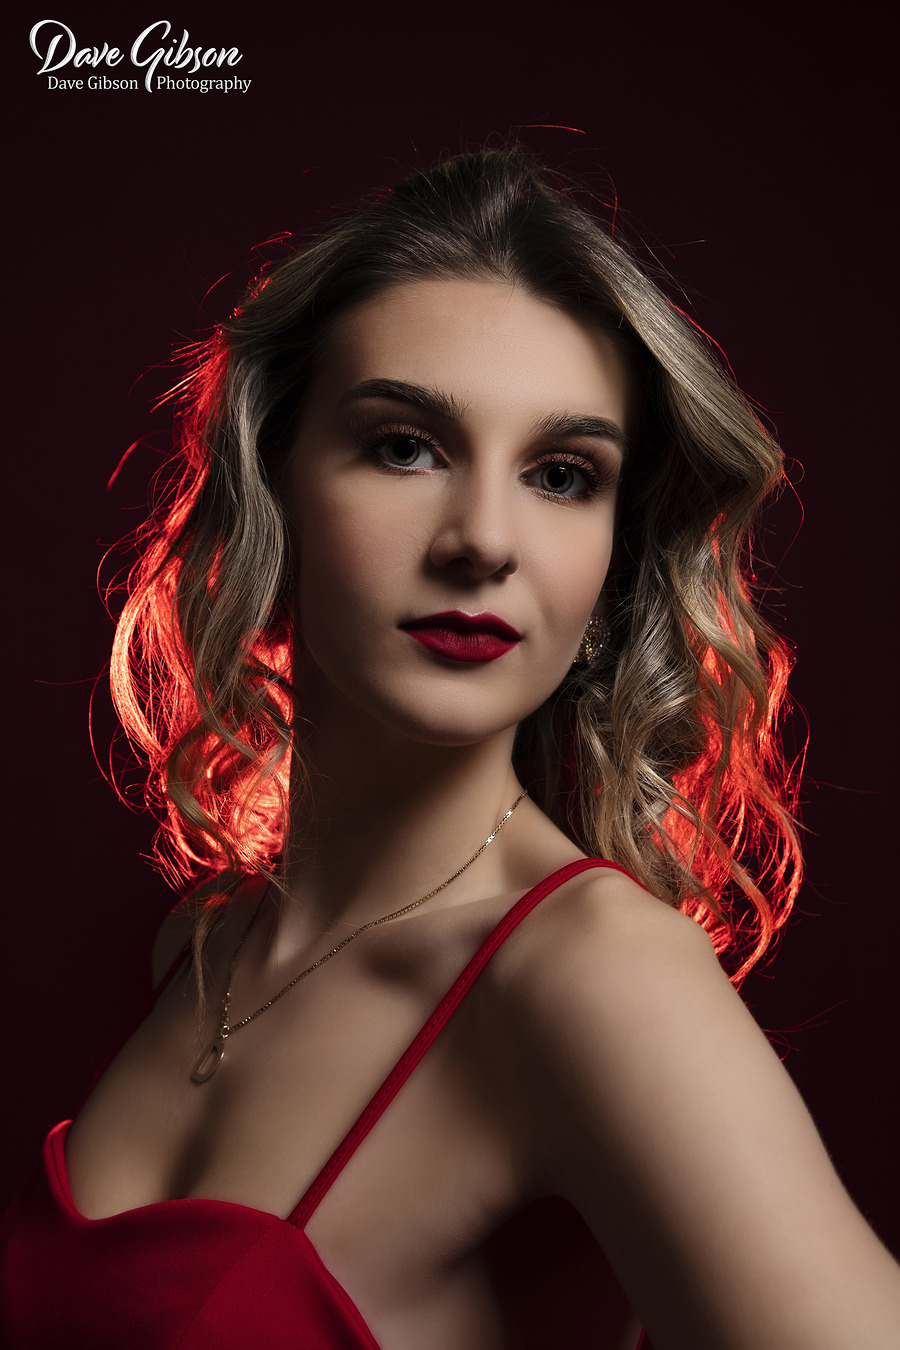 Lady in Red / Photography by Dave Gibson / Uploaded 2nd February 2019 @ 04:56 PM